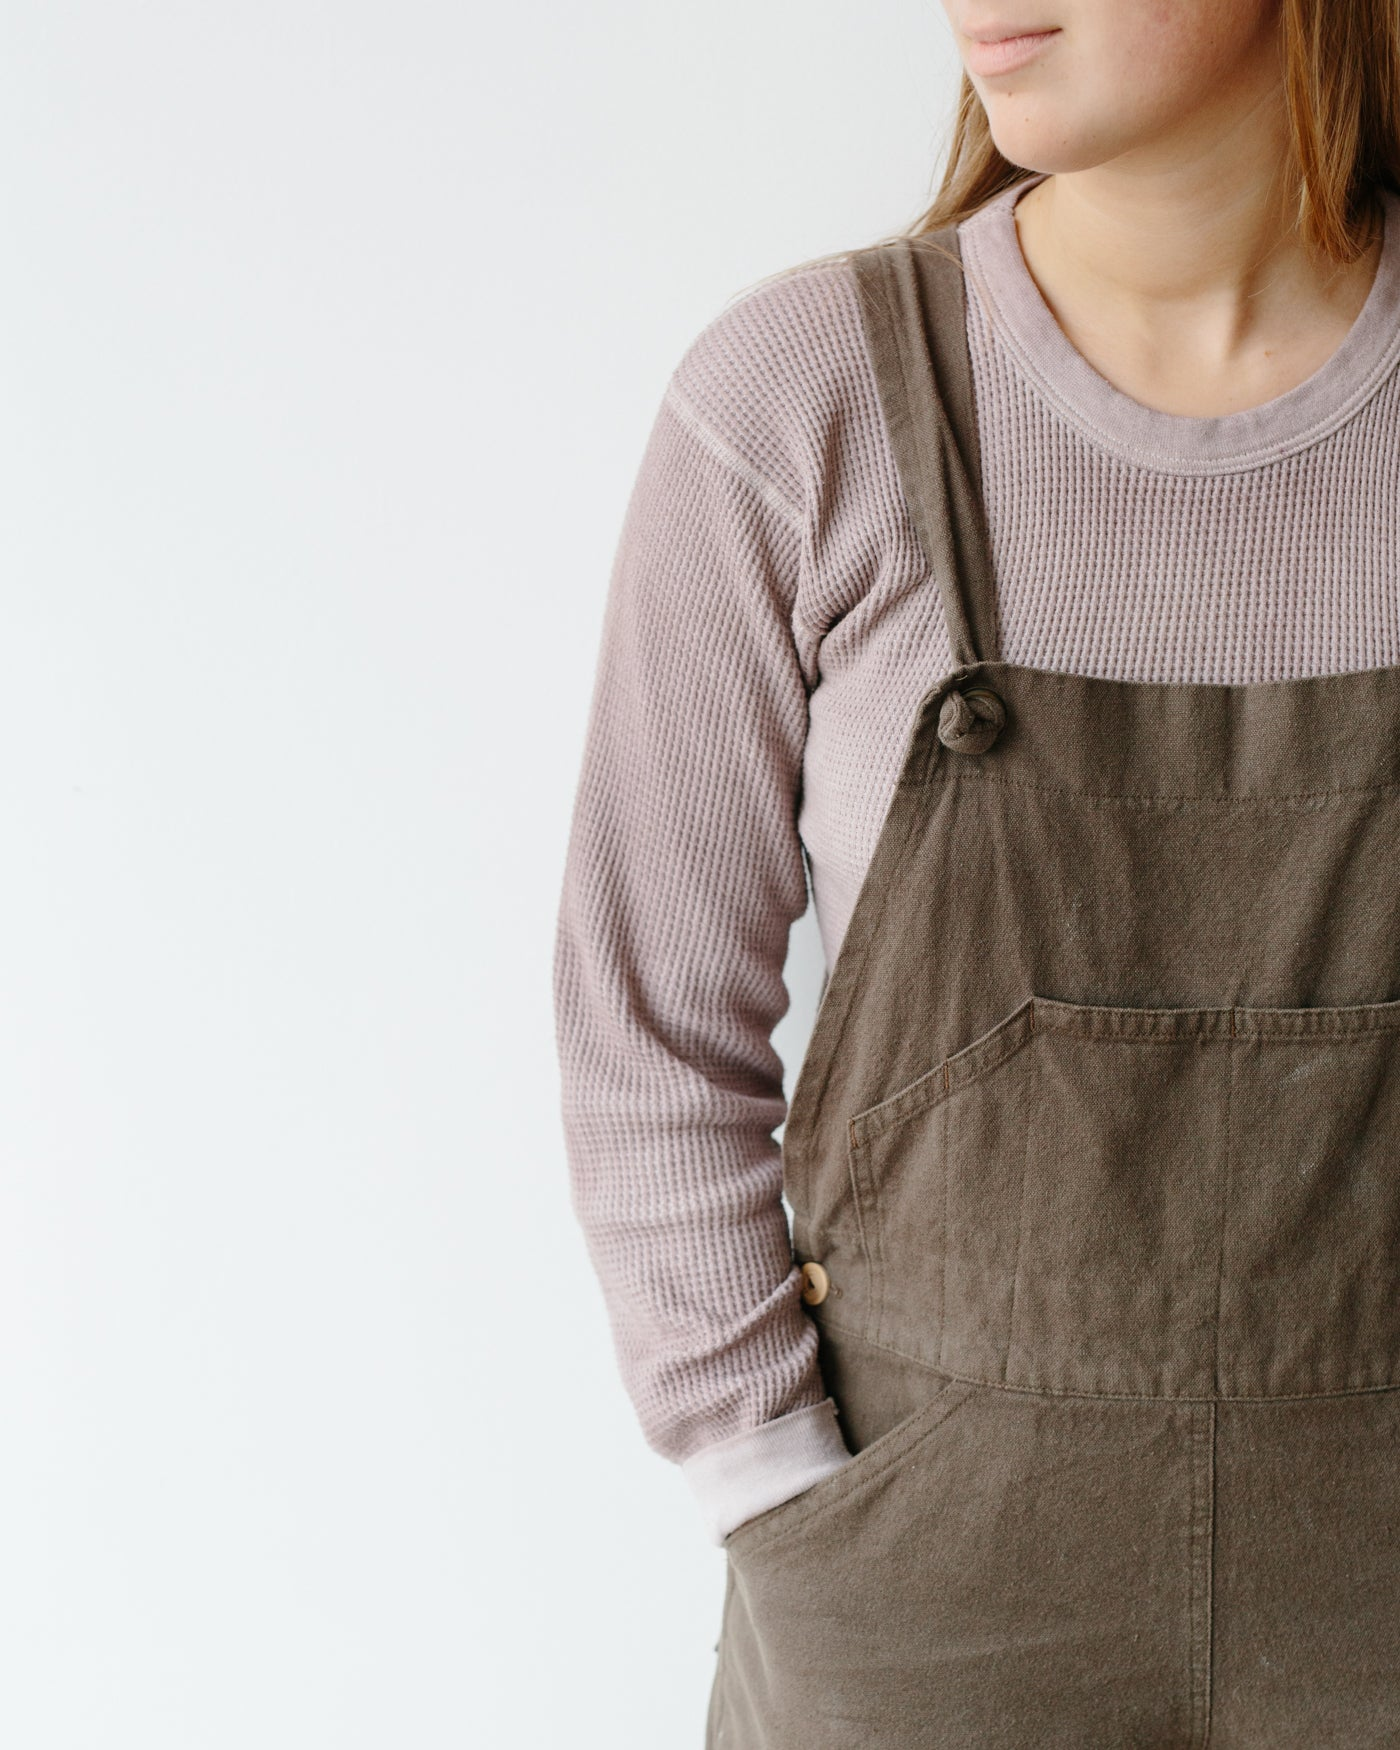 HOLD. Everyday Overalls